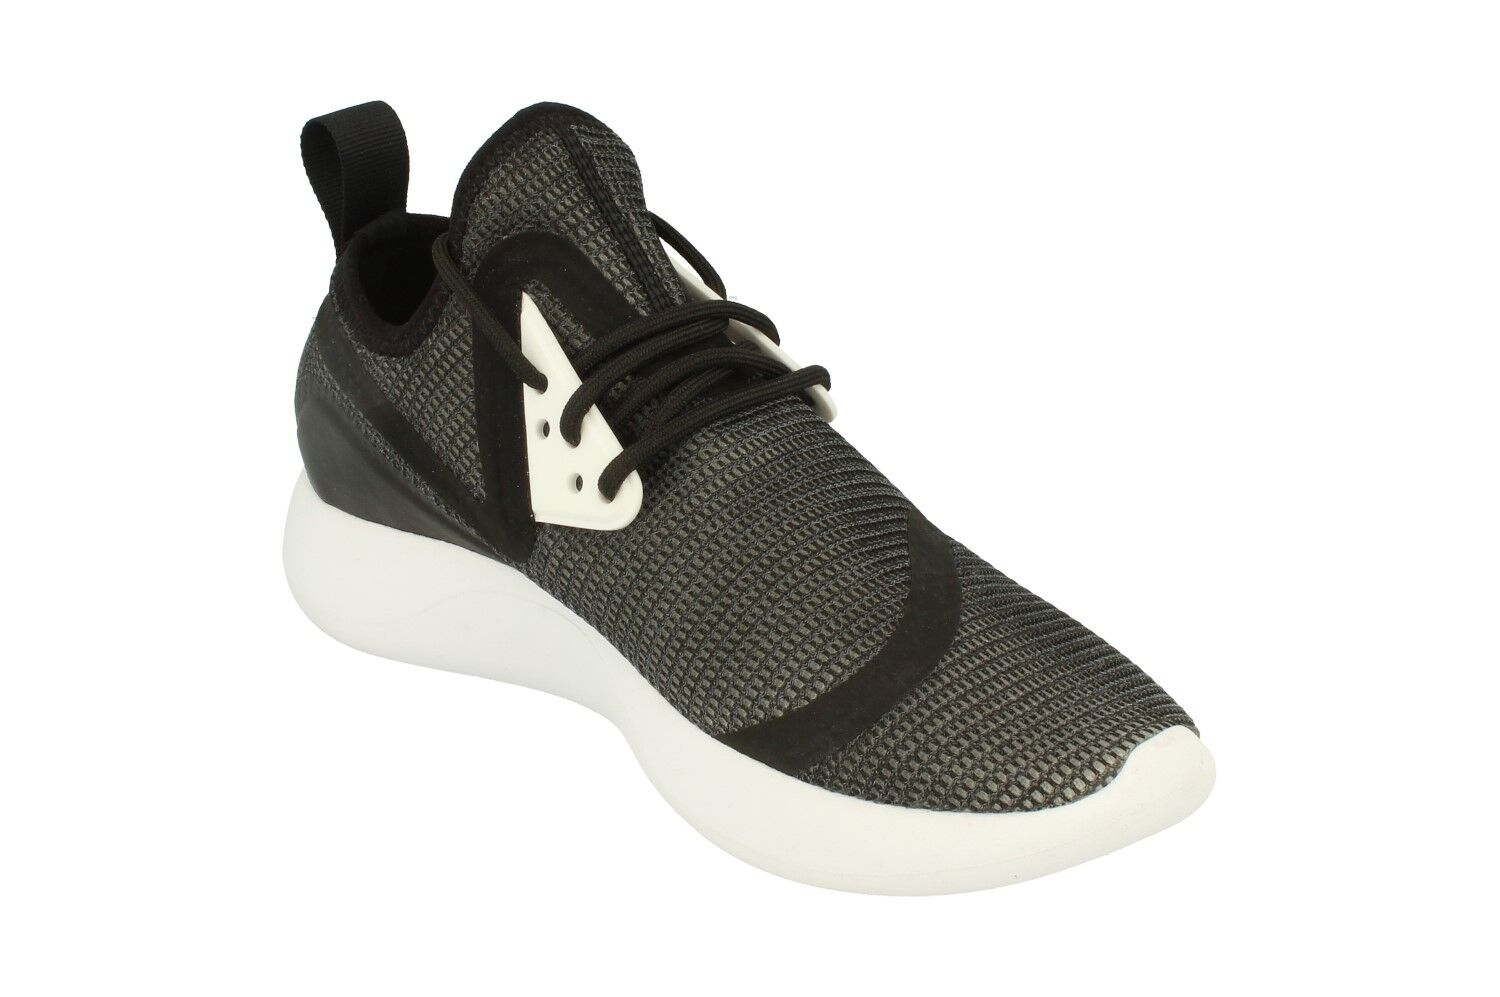 check out ec98a 34cc3 ... Nike Zapatillas Para Mujer Running lunarcharge BR para mujer 942060  Tenis Zapatos 001 ...